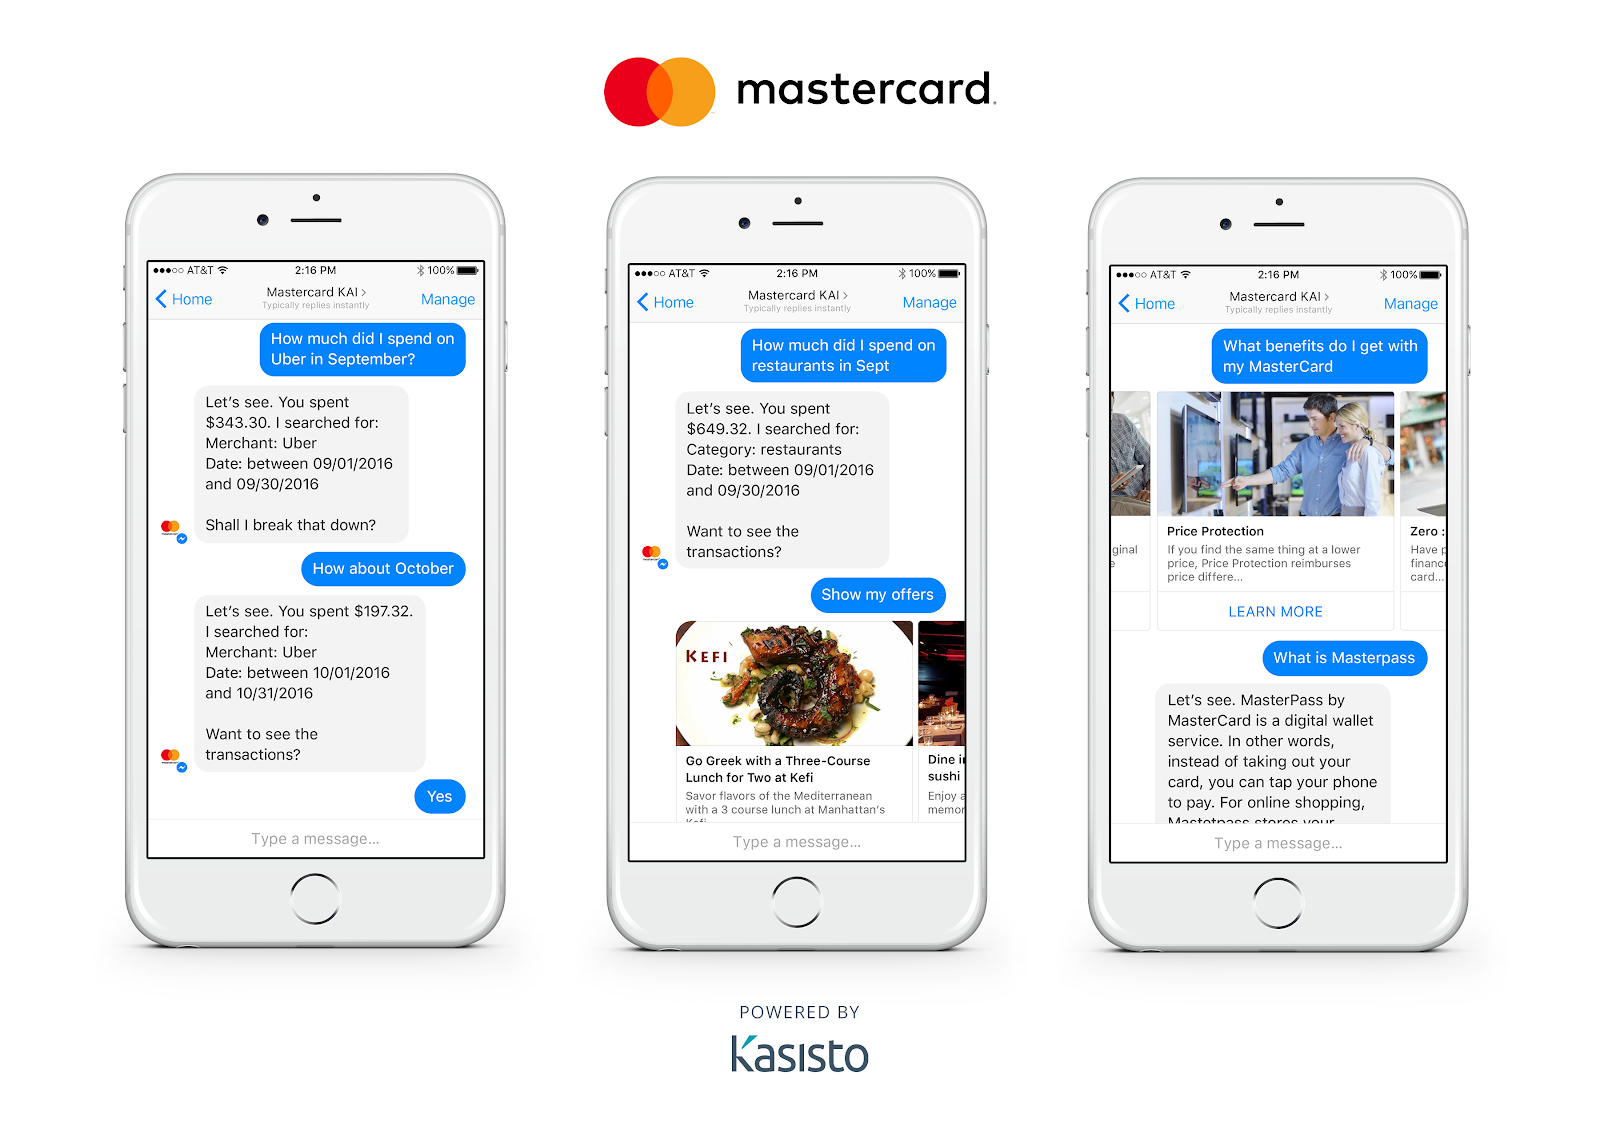 Mastercard's Facebook Messenger chatbot used for digital marketing